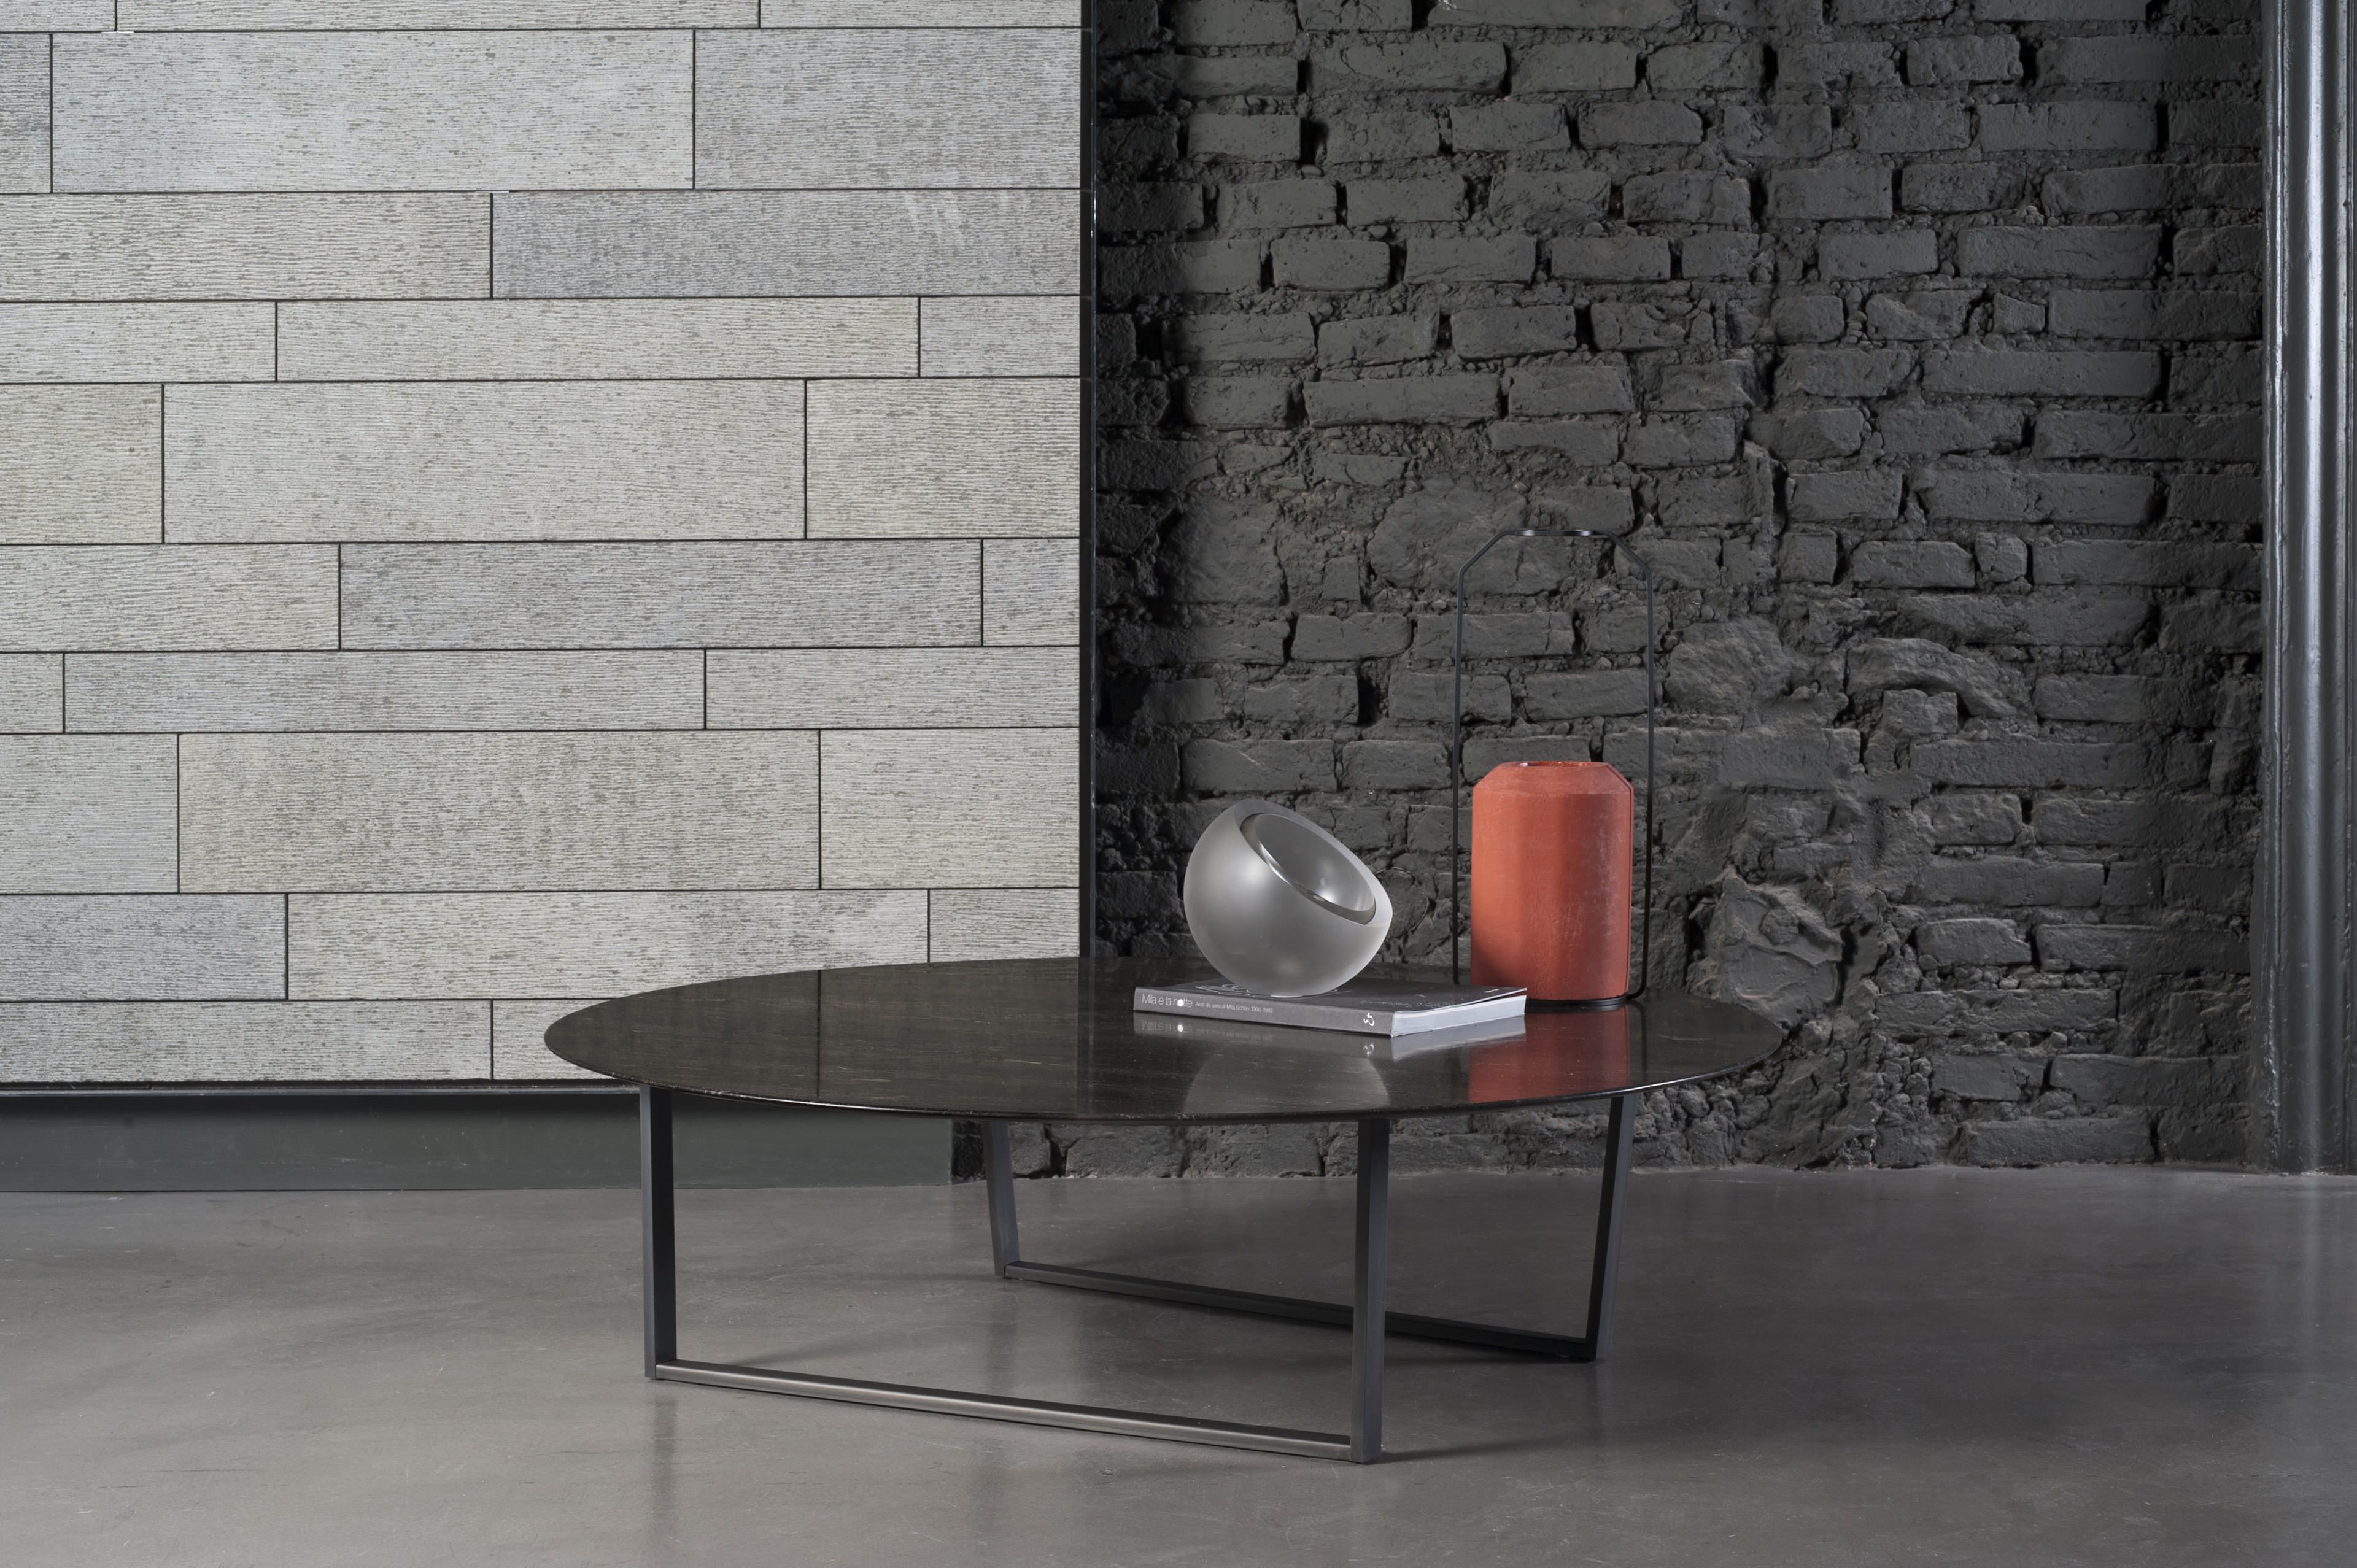 Designed by Piero Lissoni exclusively for Salvatori, Dritto combines elegant lines of classic natural stone with a bold geometric frame crafted from iron. Its defining characteristic is the curved underside of the top, and  its uber-fine edges of a mere 5 mm which give the impression of a lightness and delicacy rarely associated with stone.  Prices are indicative only as they depend on the size of the table.